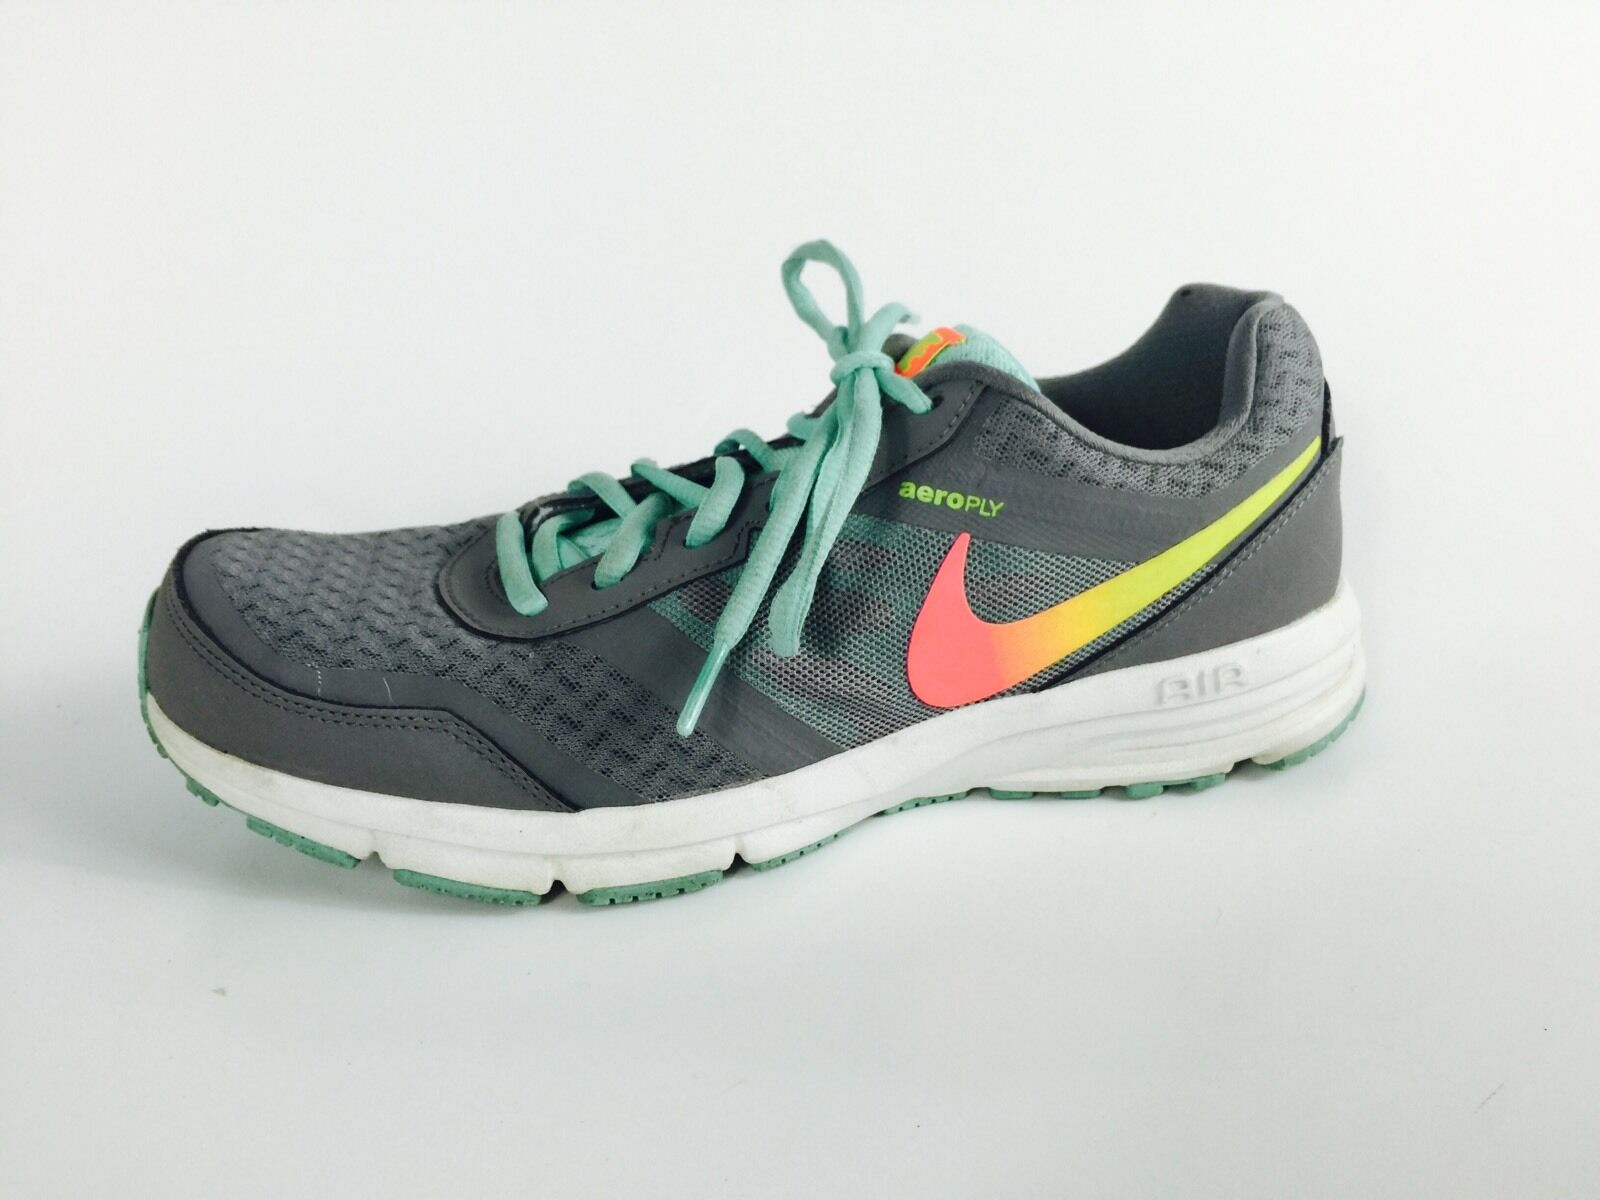 Nike AeroPly Women's Multi Color Sneakers Comfortable Wild casual shoes